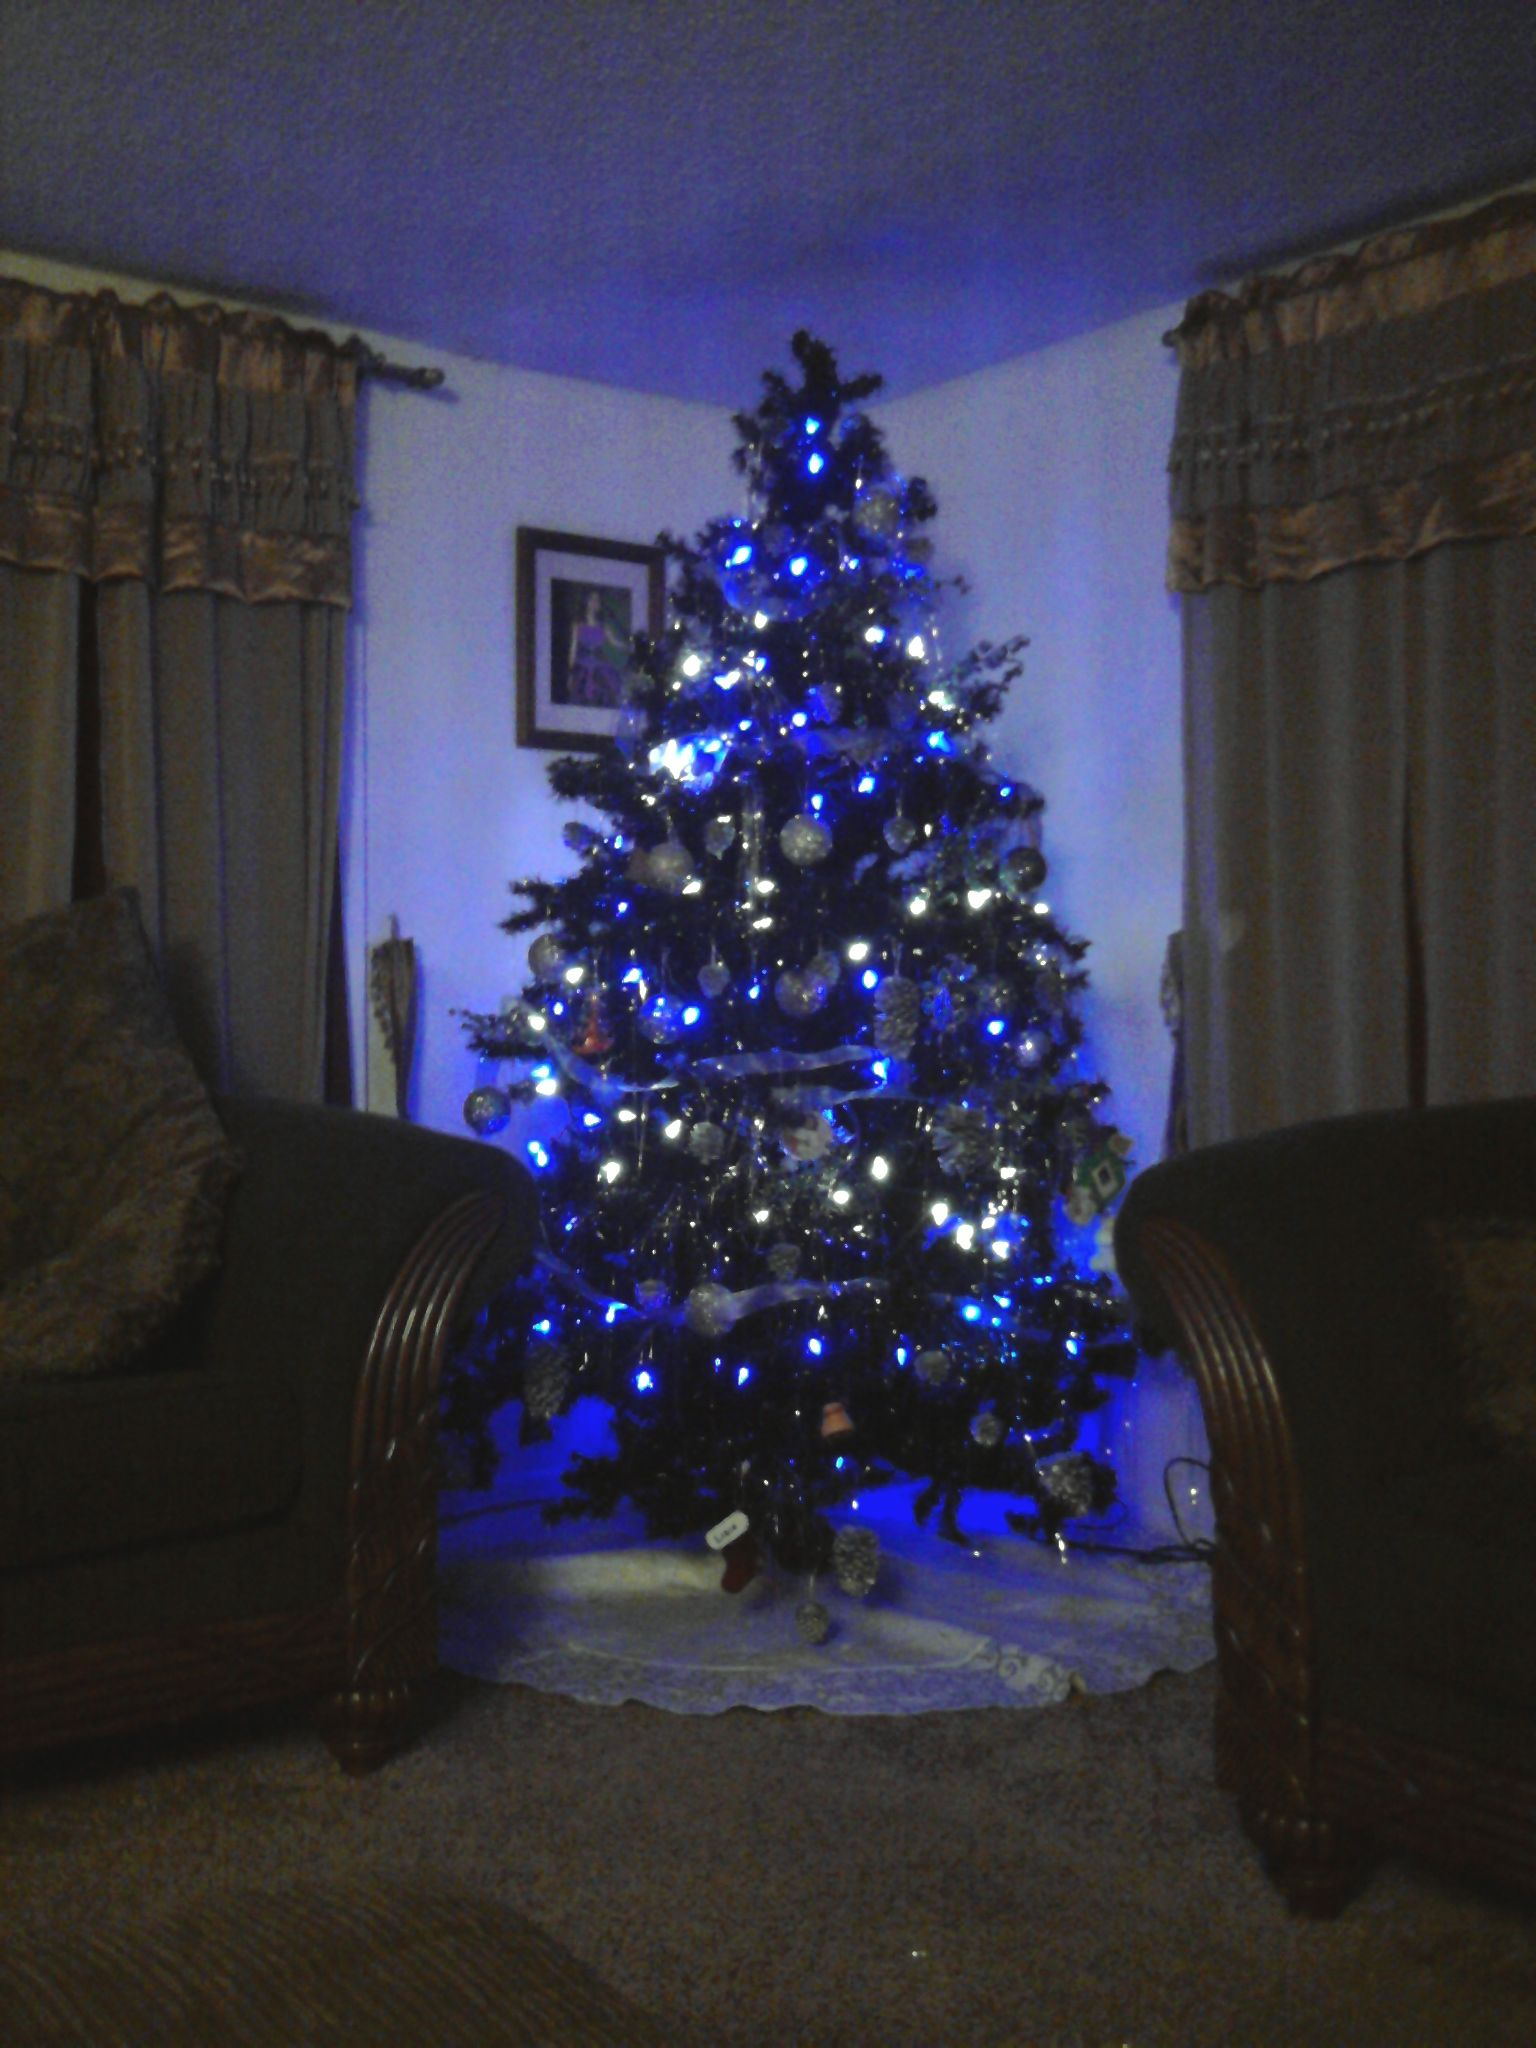 White Christmas Tree With Blue Lights.Our Black Christmas Tree With Blue White Lights Holidays